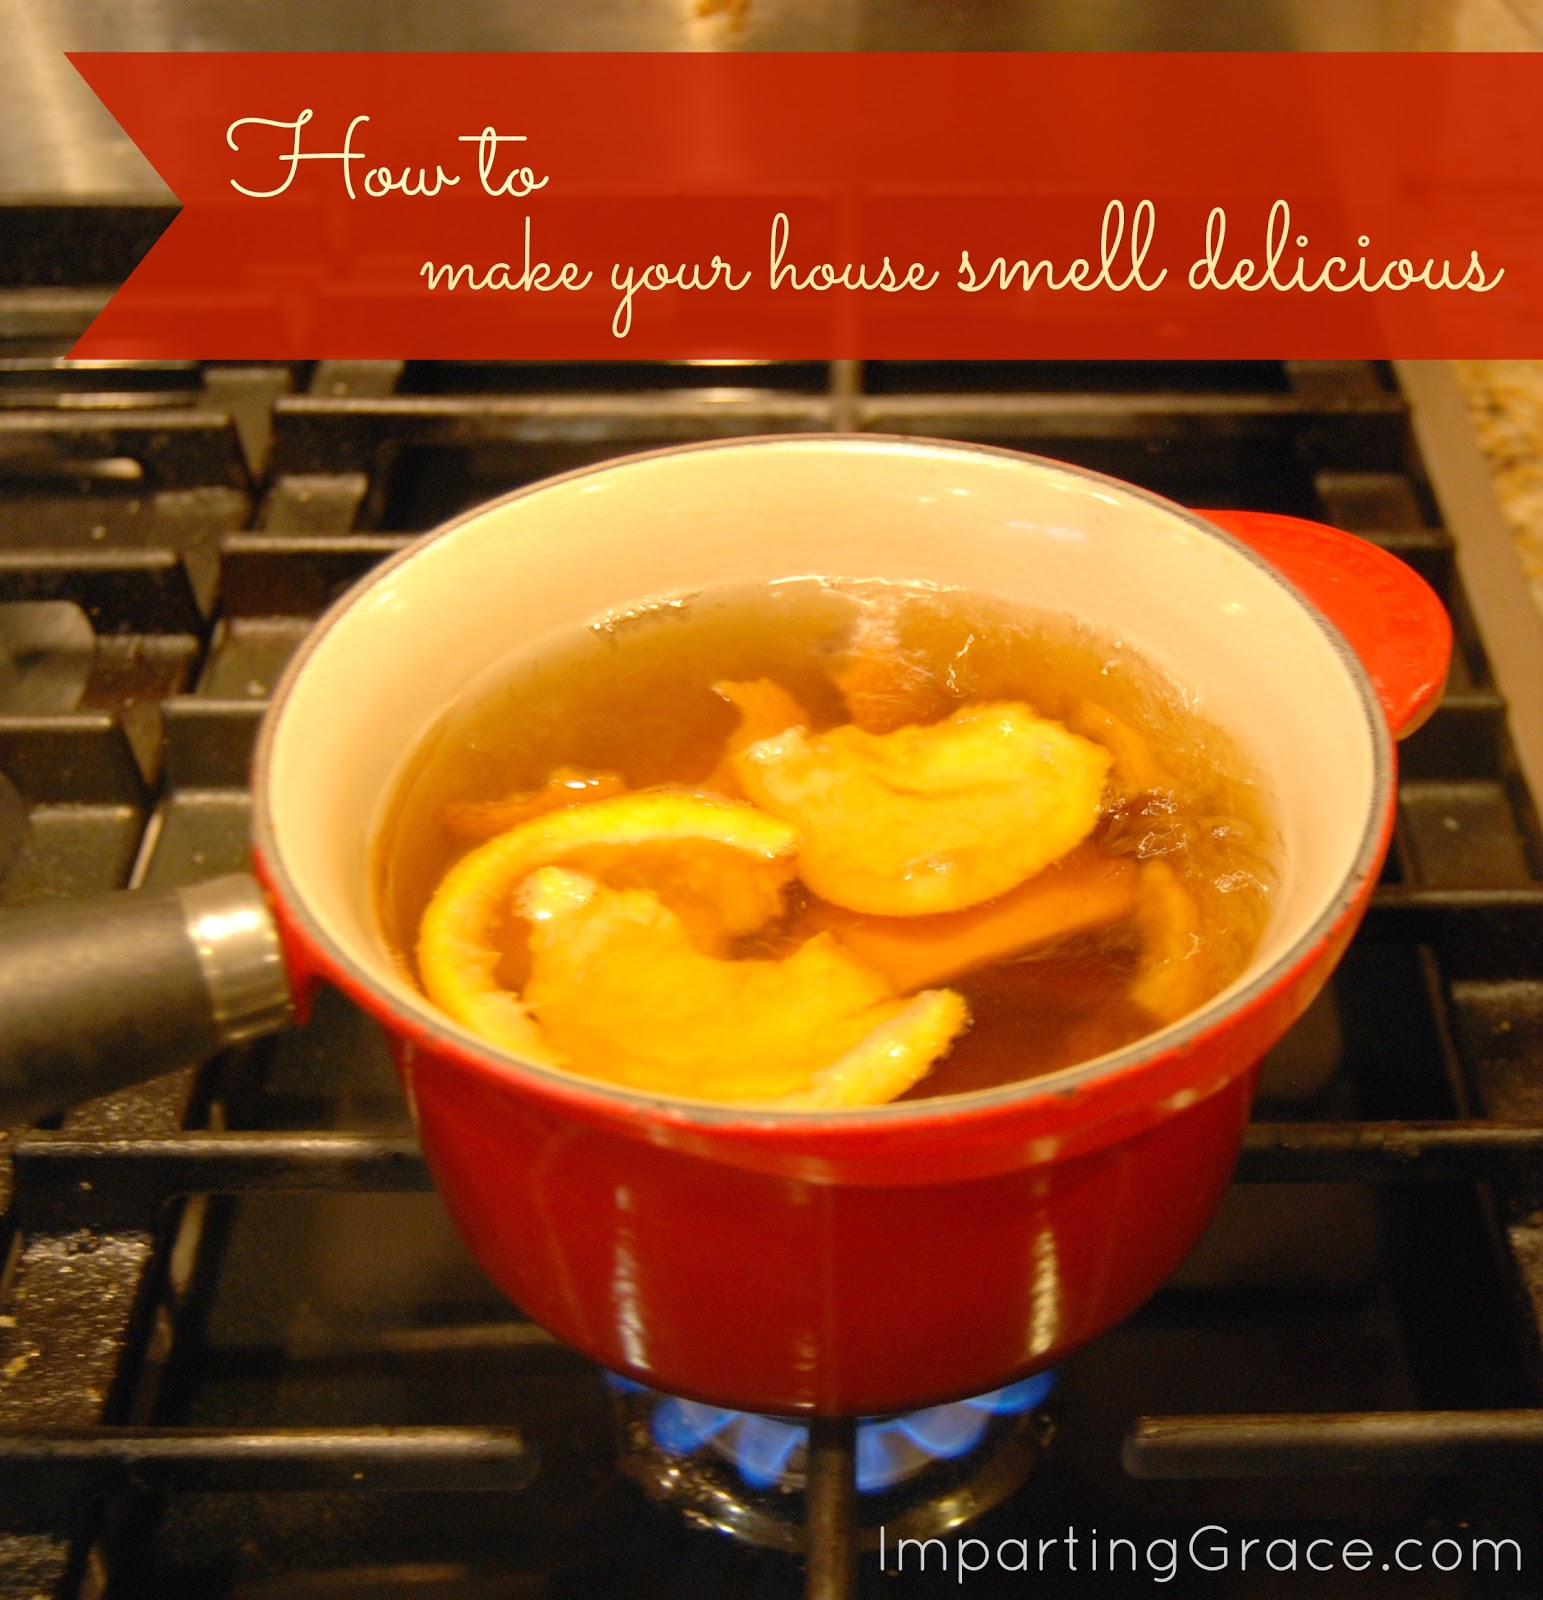 Imparting Grace How To Make Your House Smell Delicious